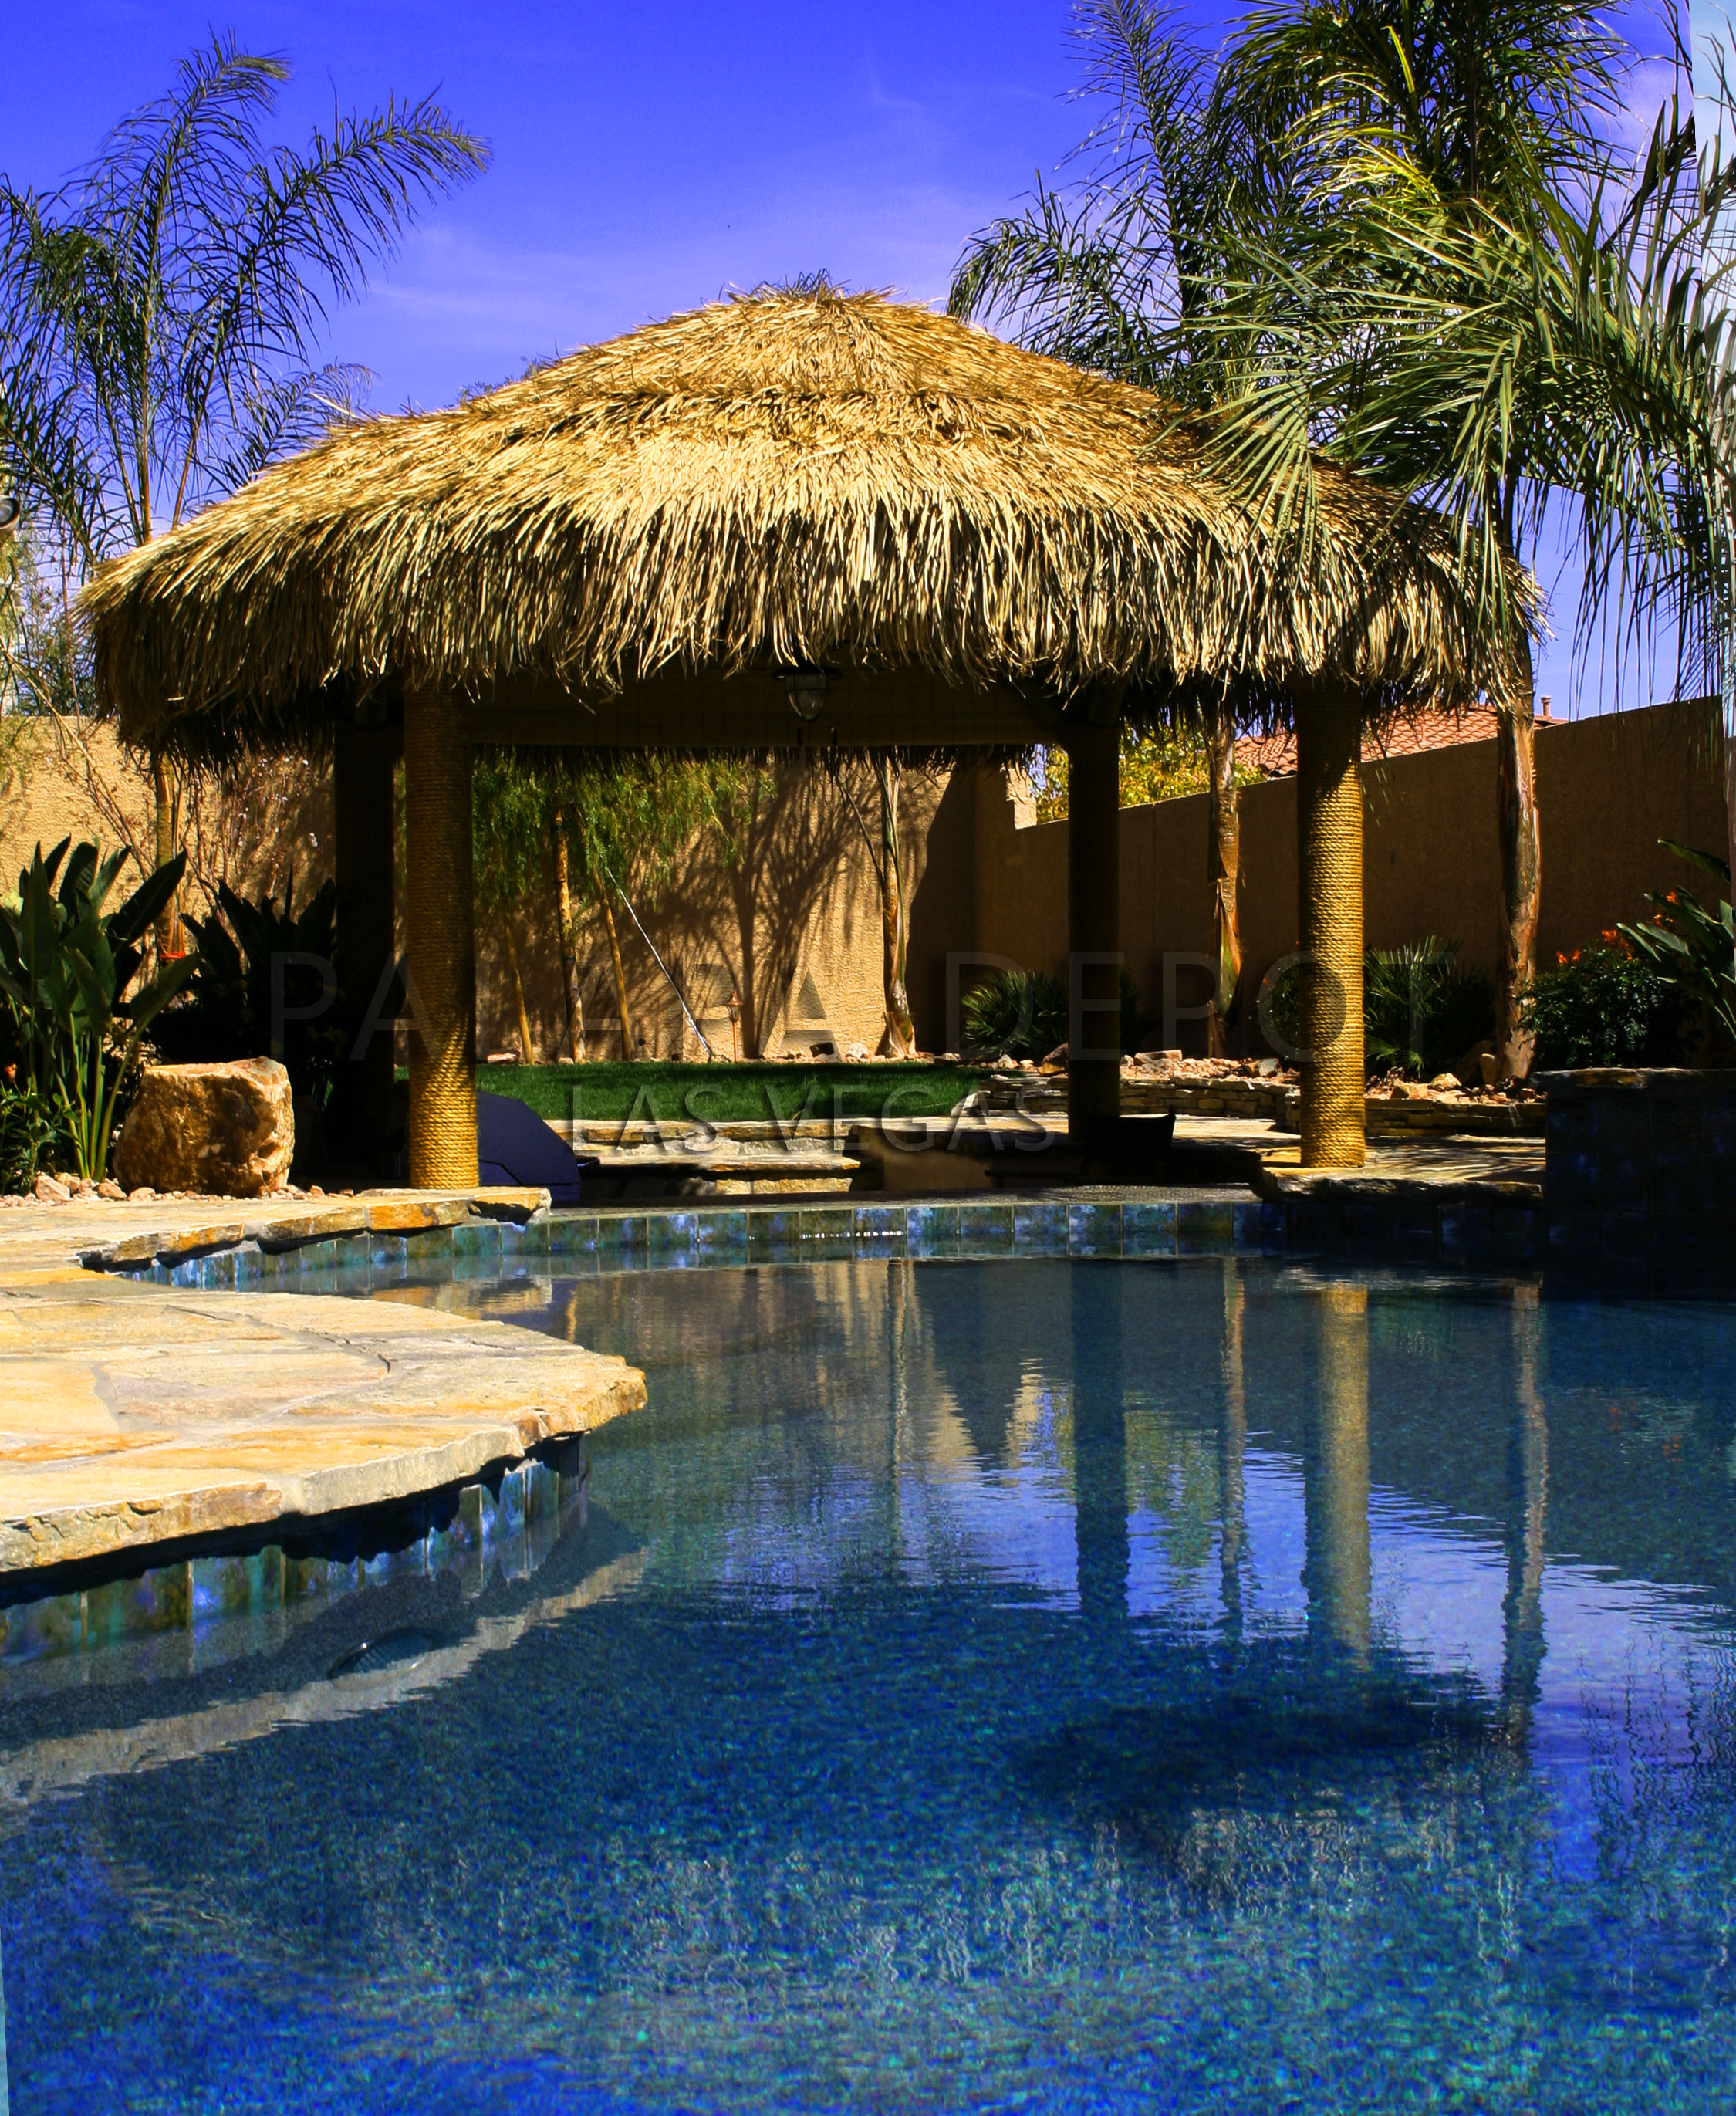 Palapa over sunken bar